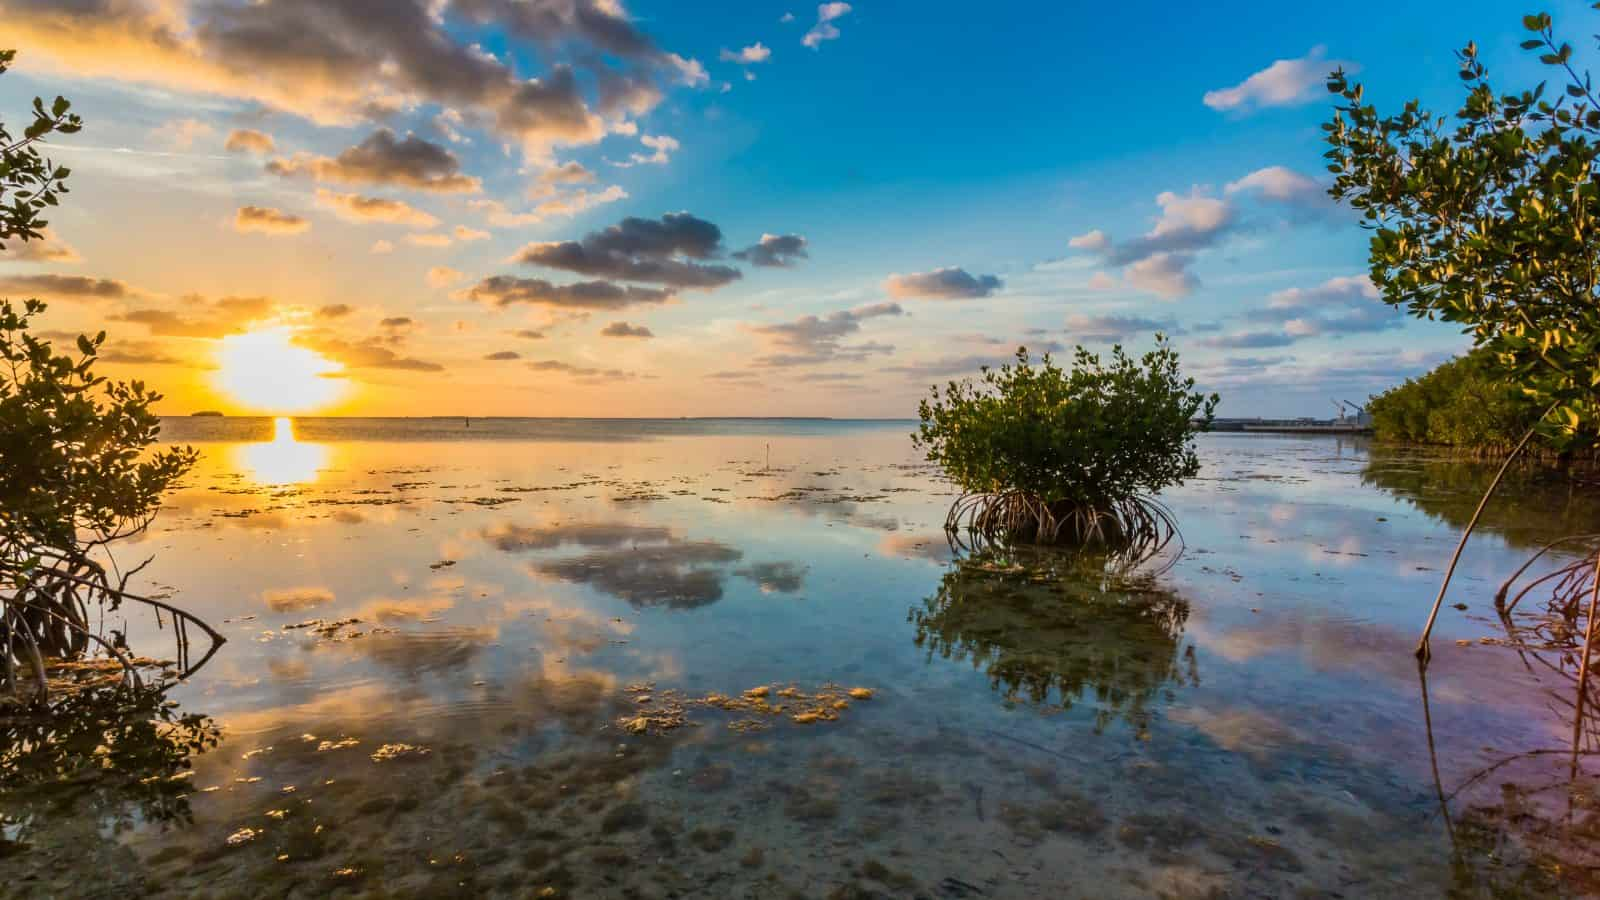 The sun and clouds are reflected in the waters of Key Largo at sunset.